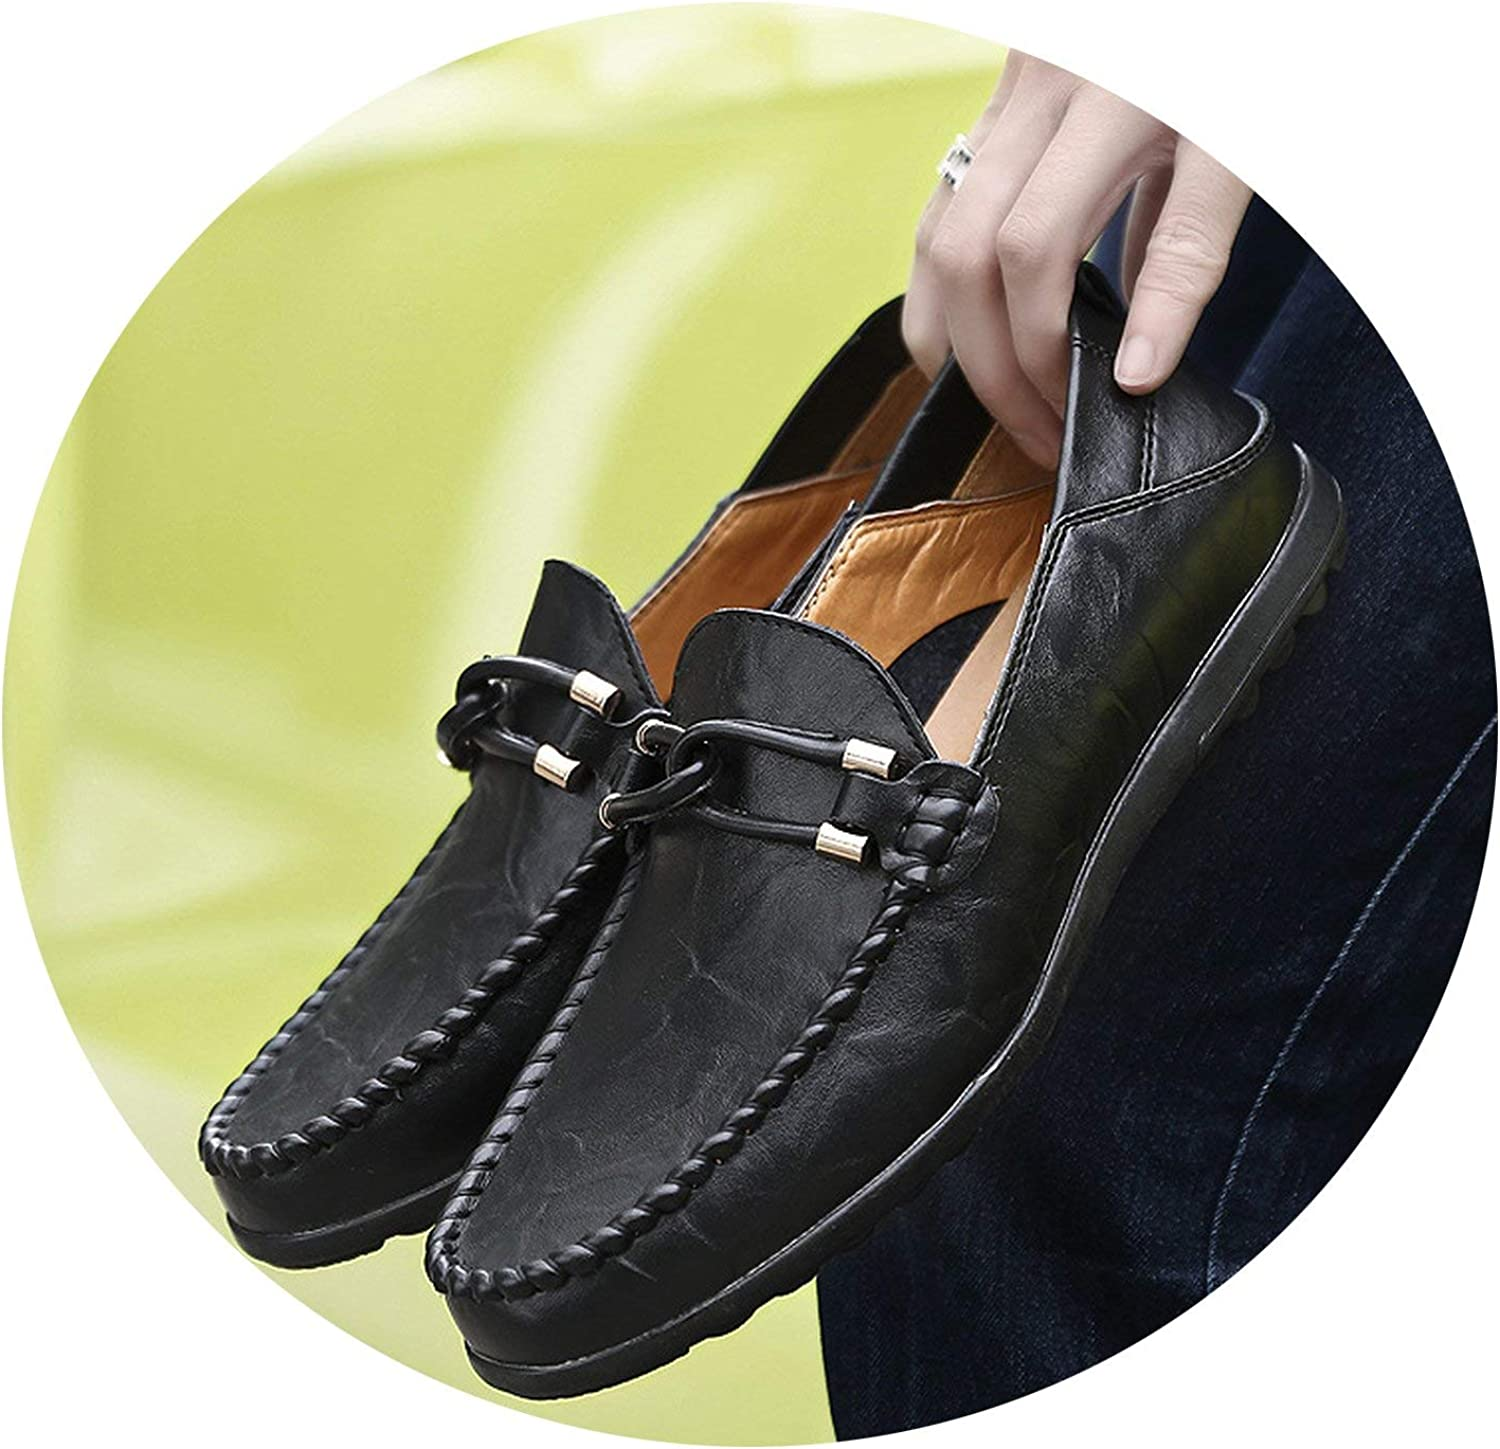 OH WHY Handmade Genuine Leather Men Casual shoes Loafers Moccasins Breathable Slip on Driving shoes